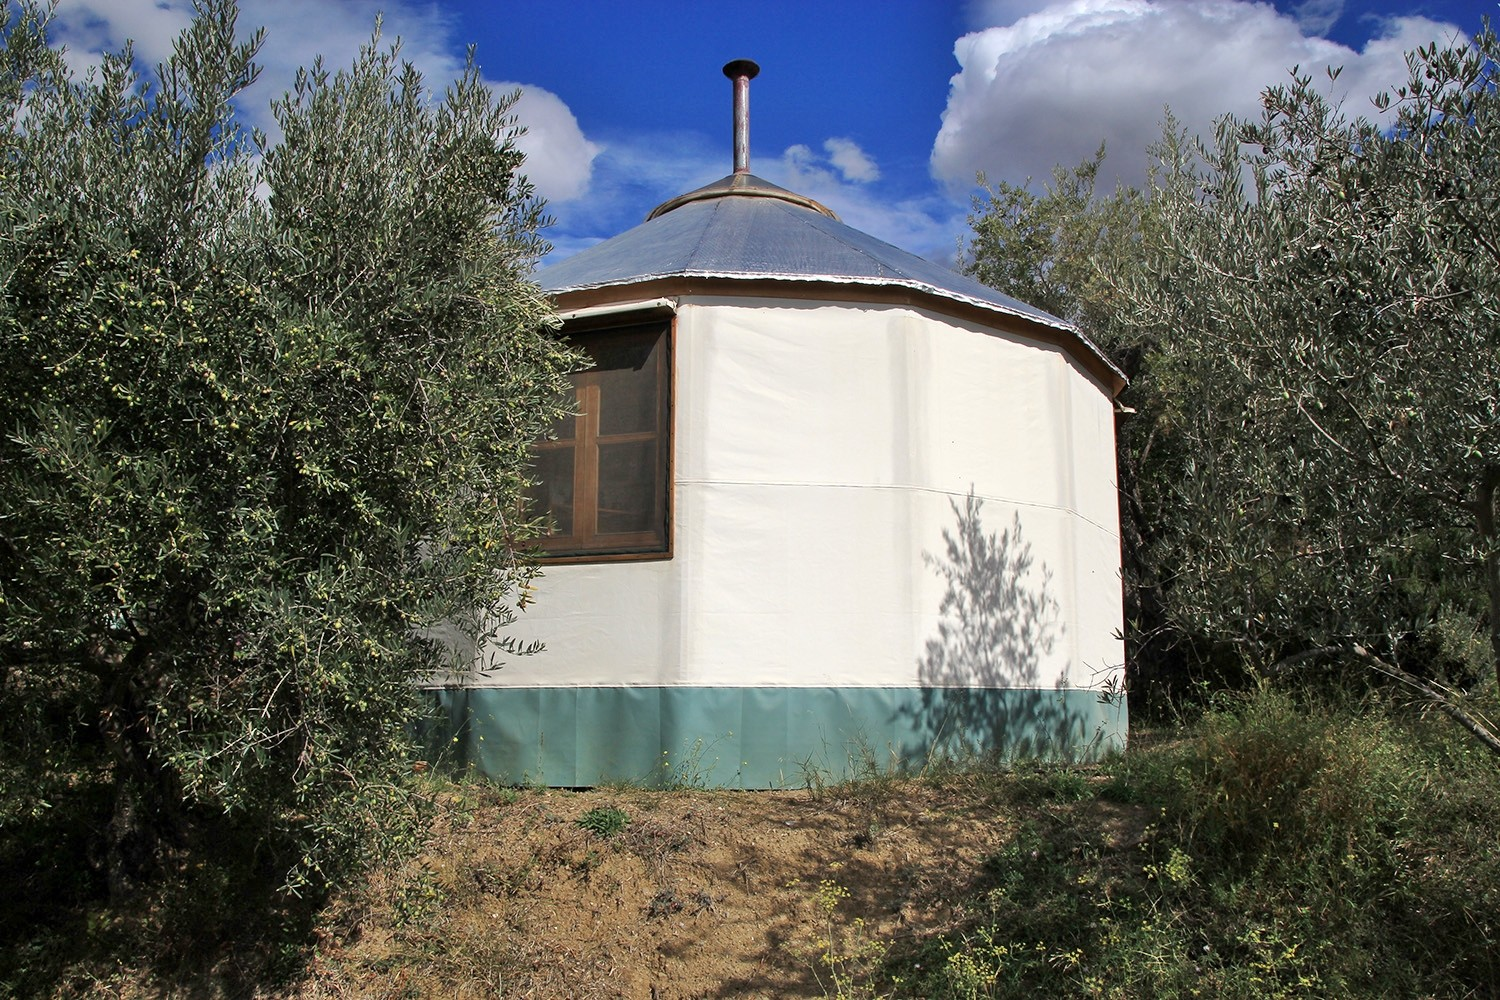 View on the small Yurt